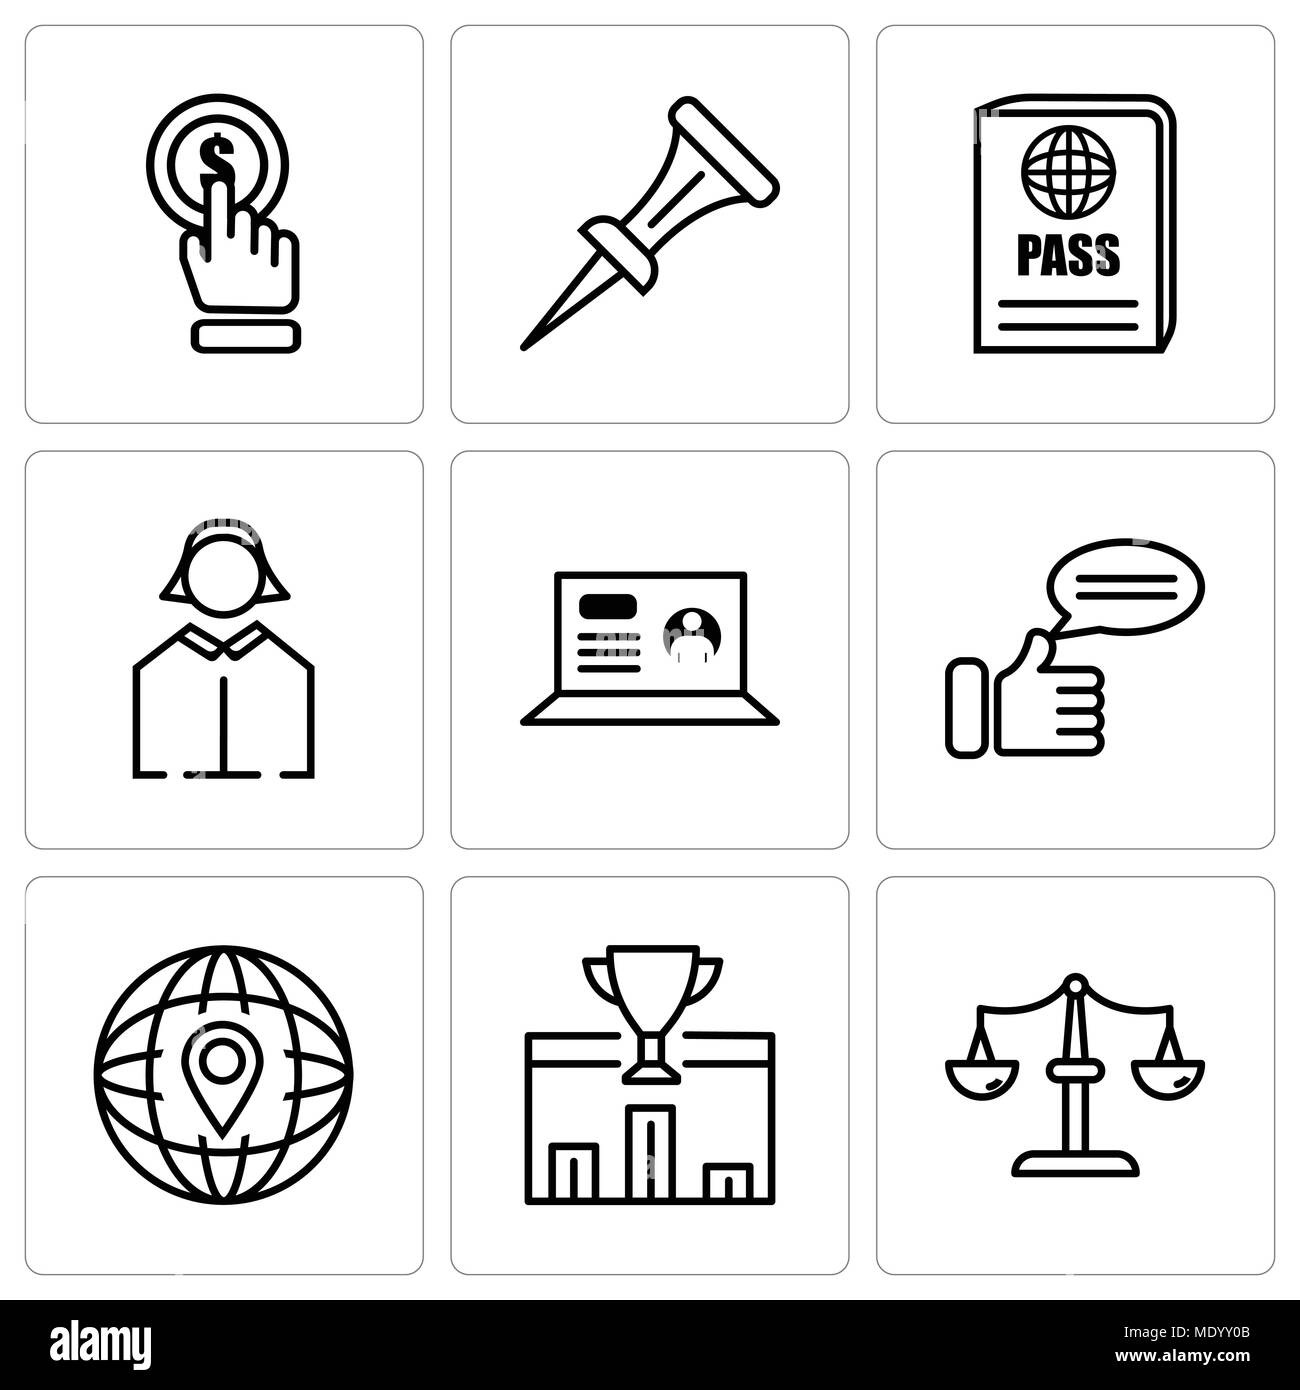 Set Of 9 simple editable icons such as scales, 1st place, location, comment, laptop, business woman, passport, nail, click, can be used for mobile, we - Stock Vector